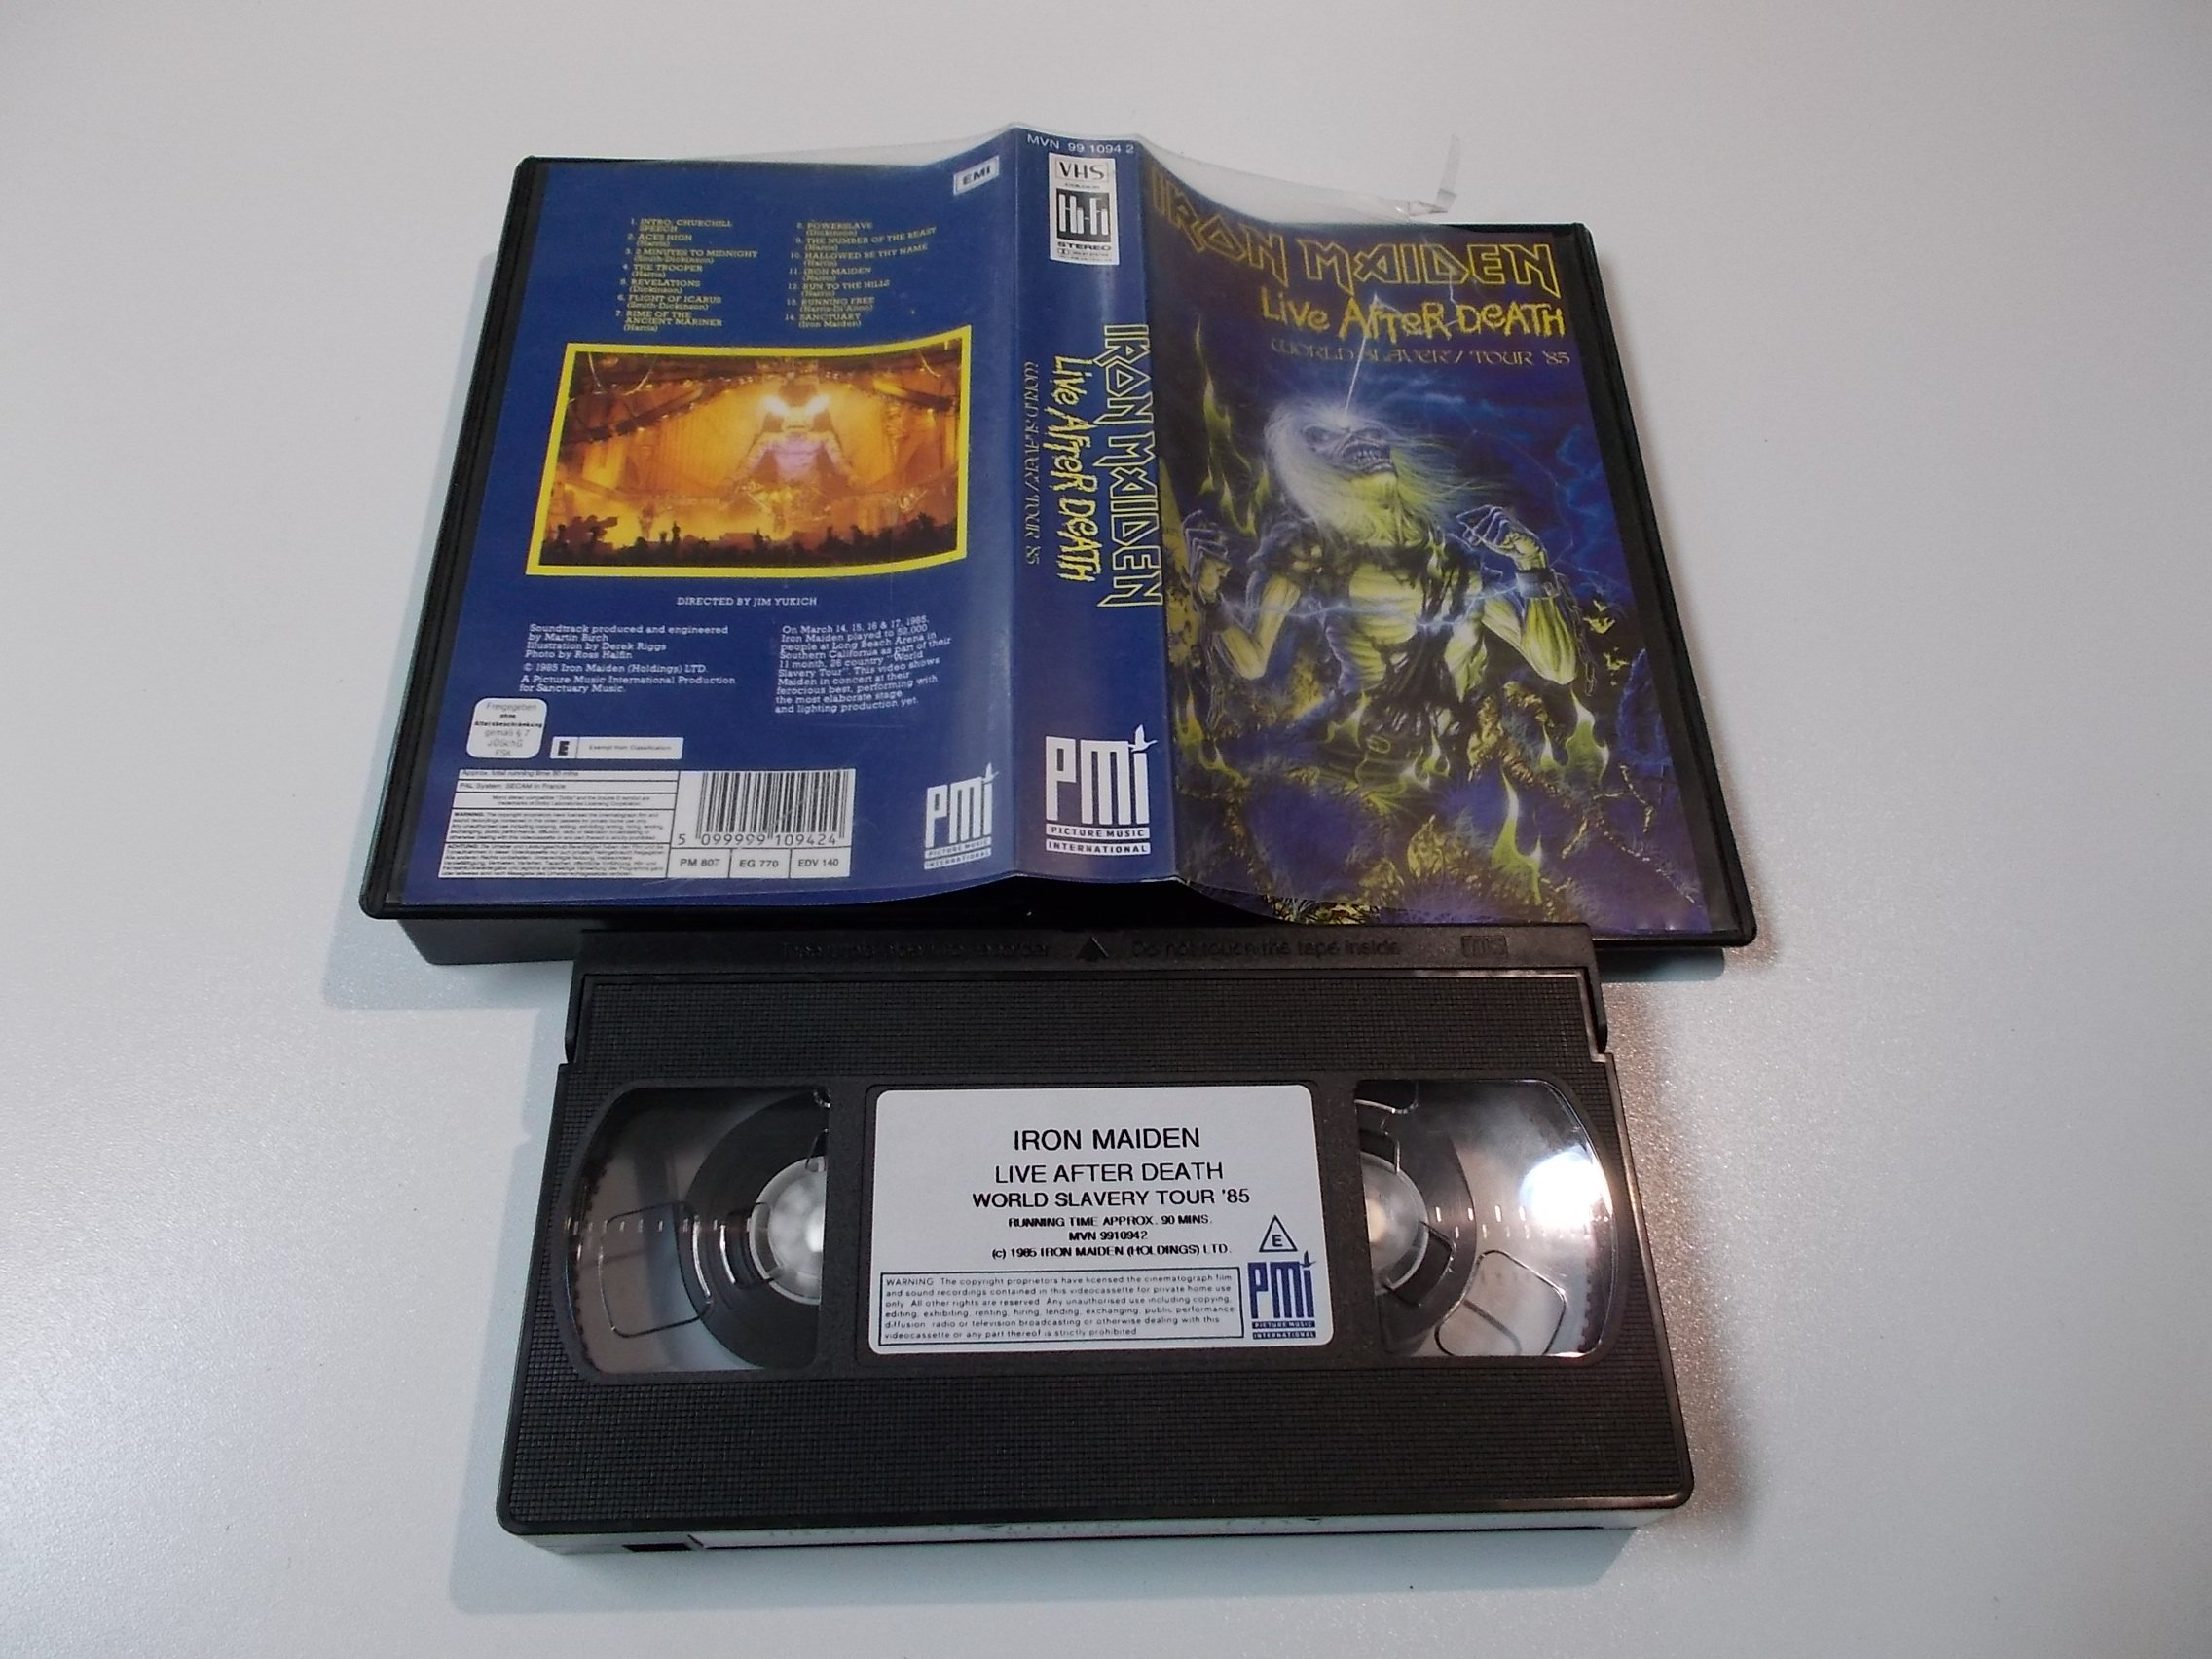 IRON MAIDEN LIVE AFTER DEATH - Kaseta Video VHS - 1486 Opole - AlleOpole.pl